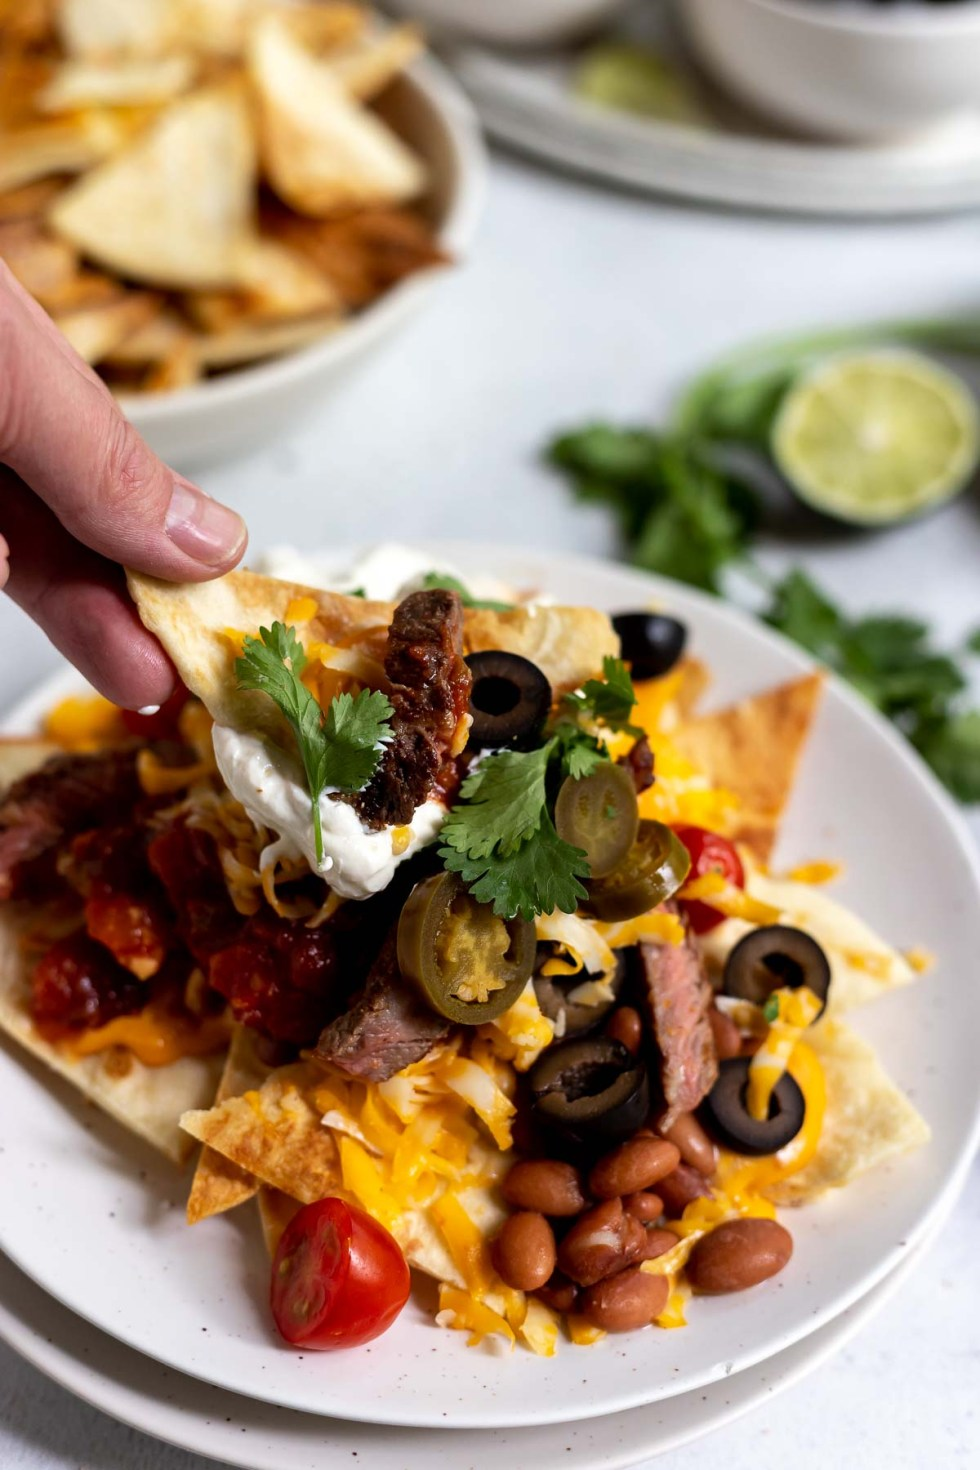 homemade tortilla chips topped with nacho toppings